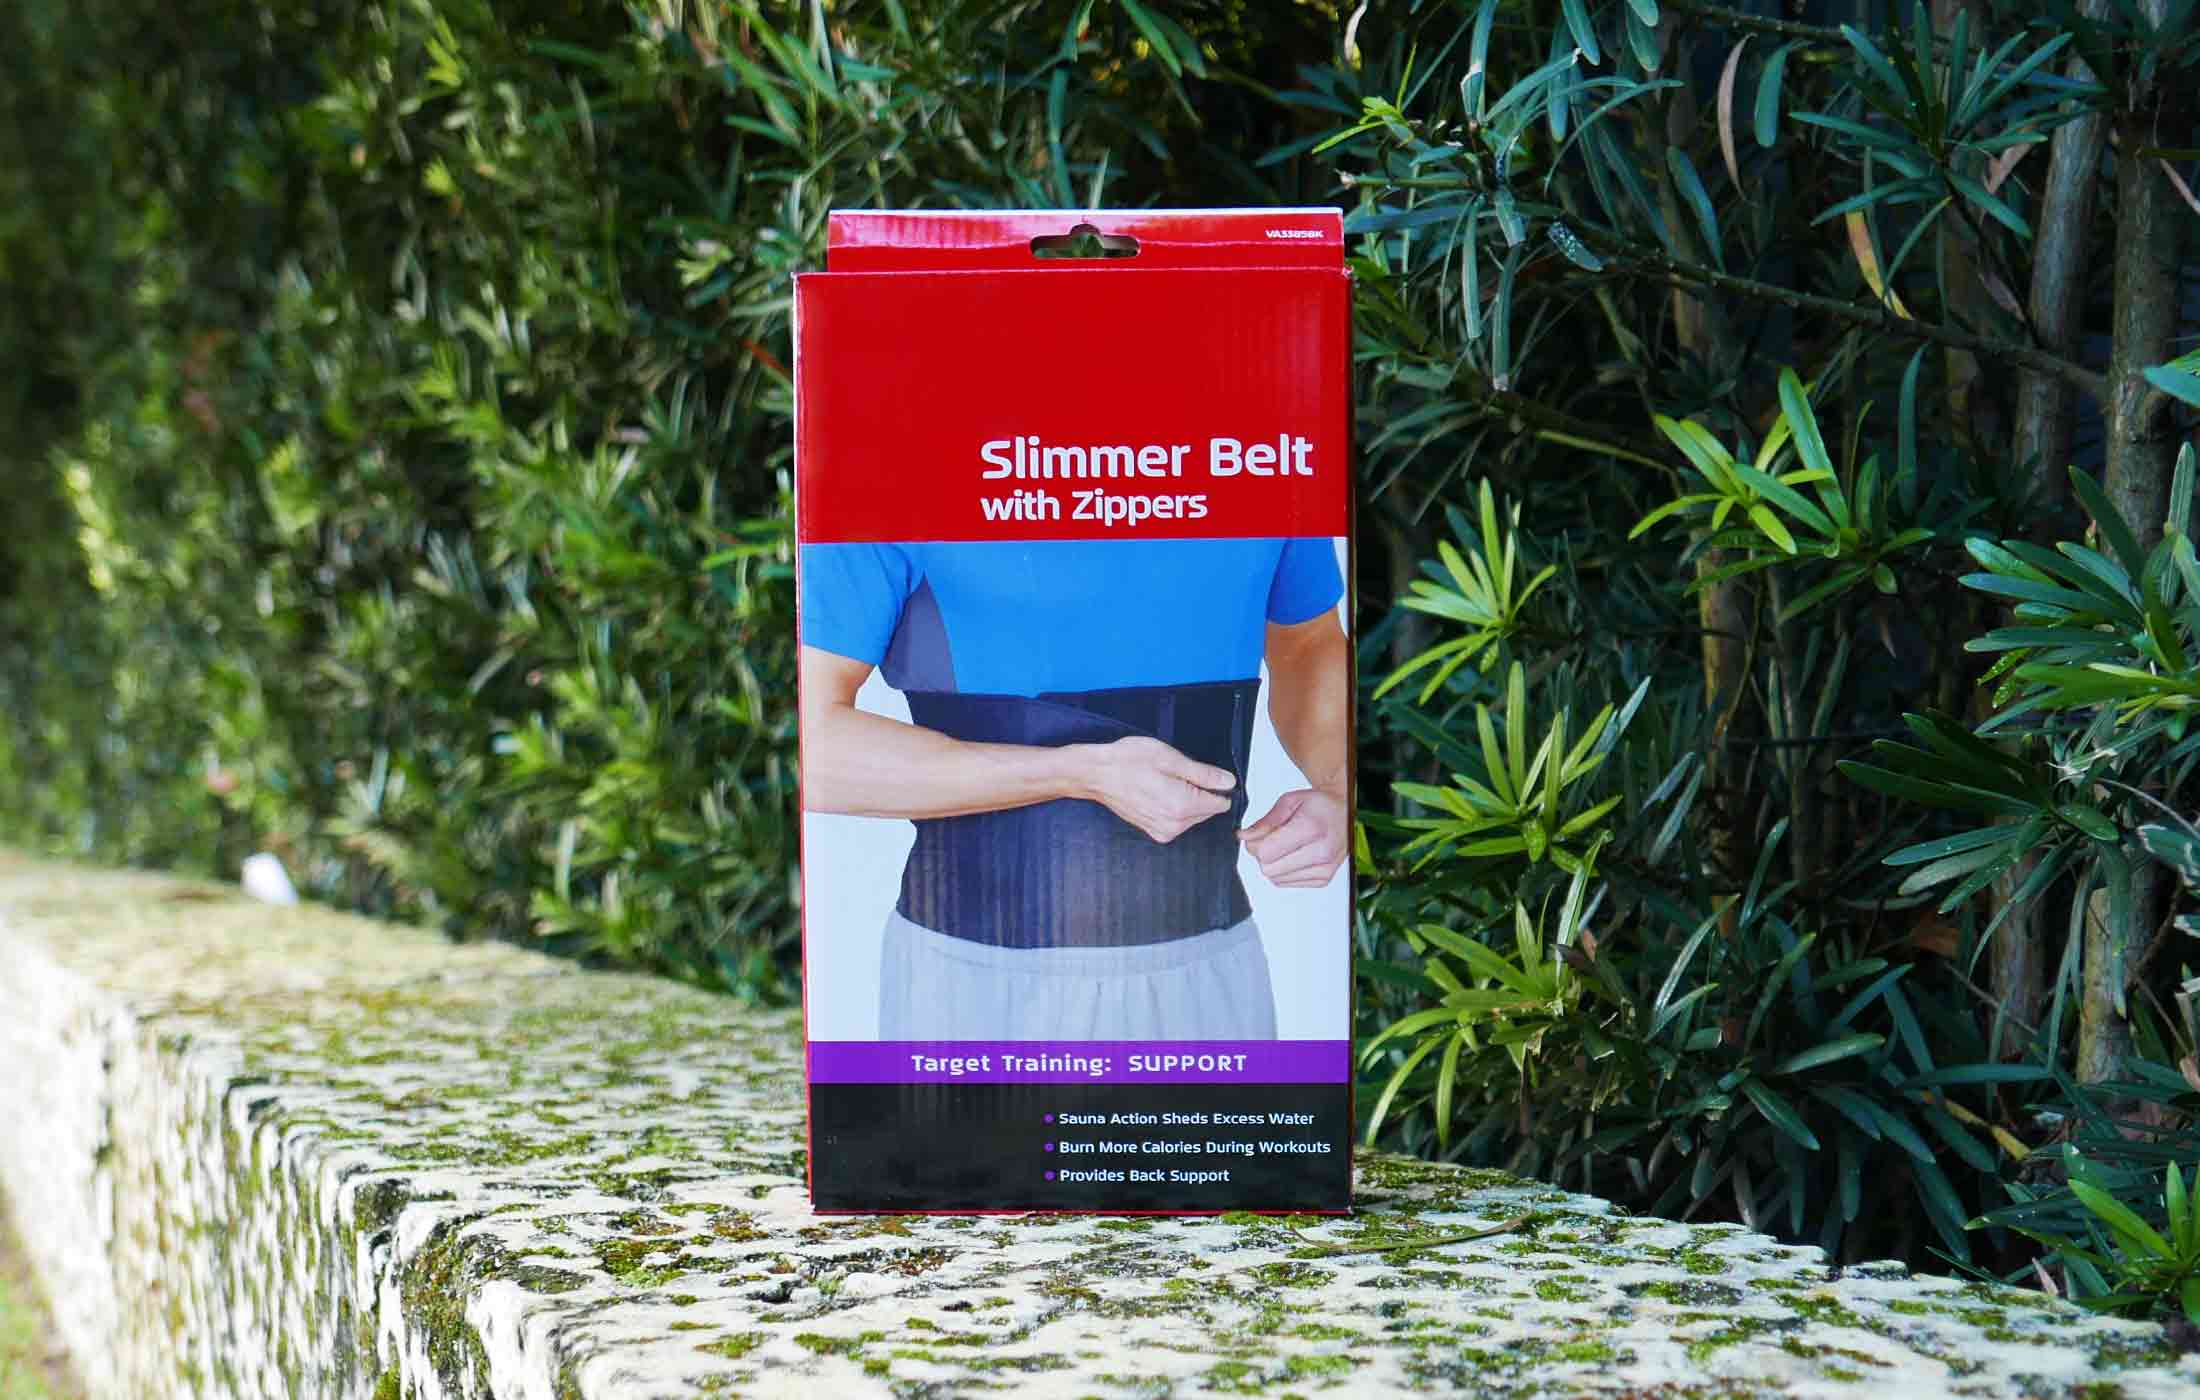 ba8f8b0b21 Slimmer Belt Review - 11 Things You Need to Know